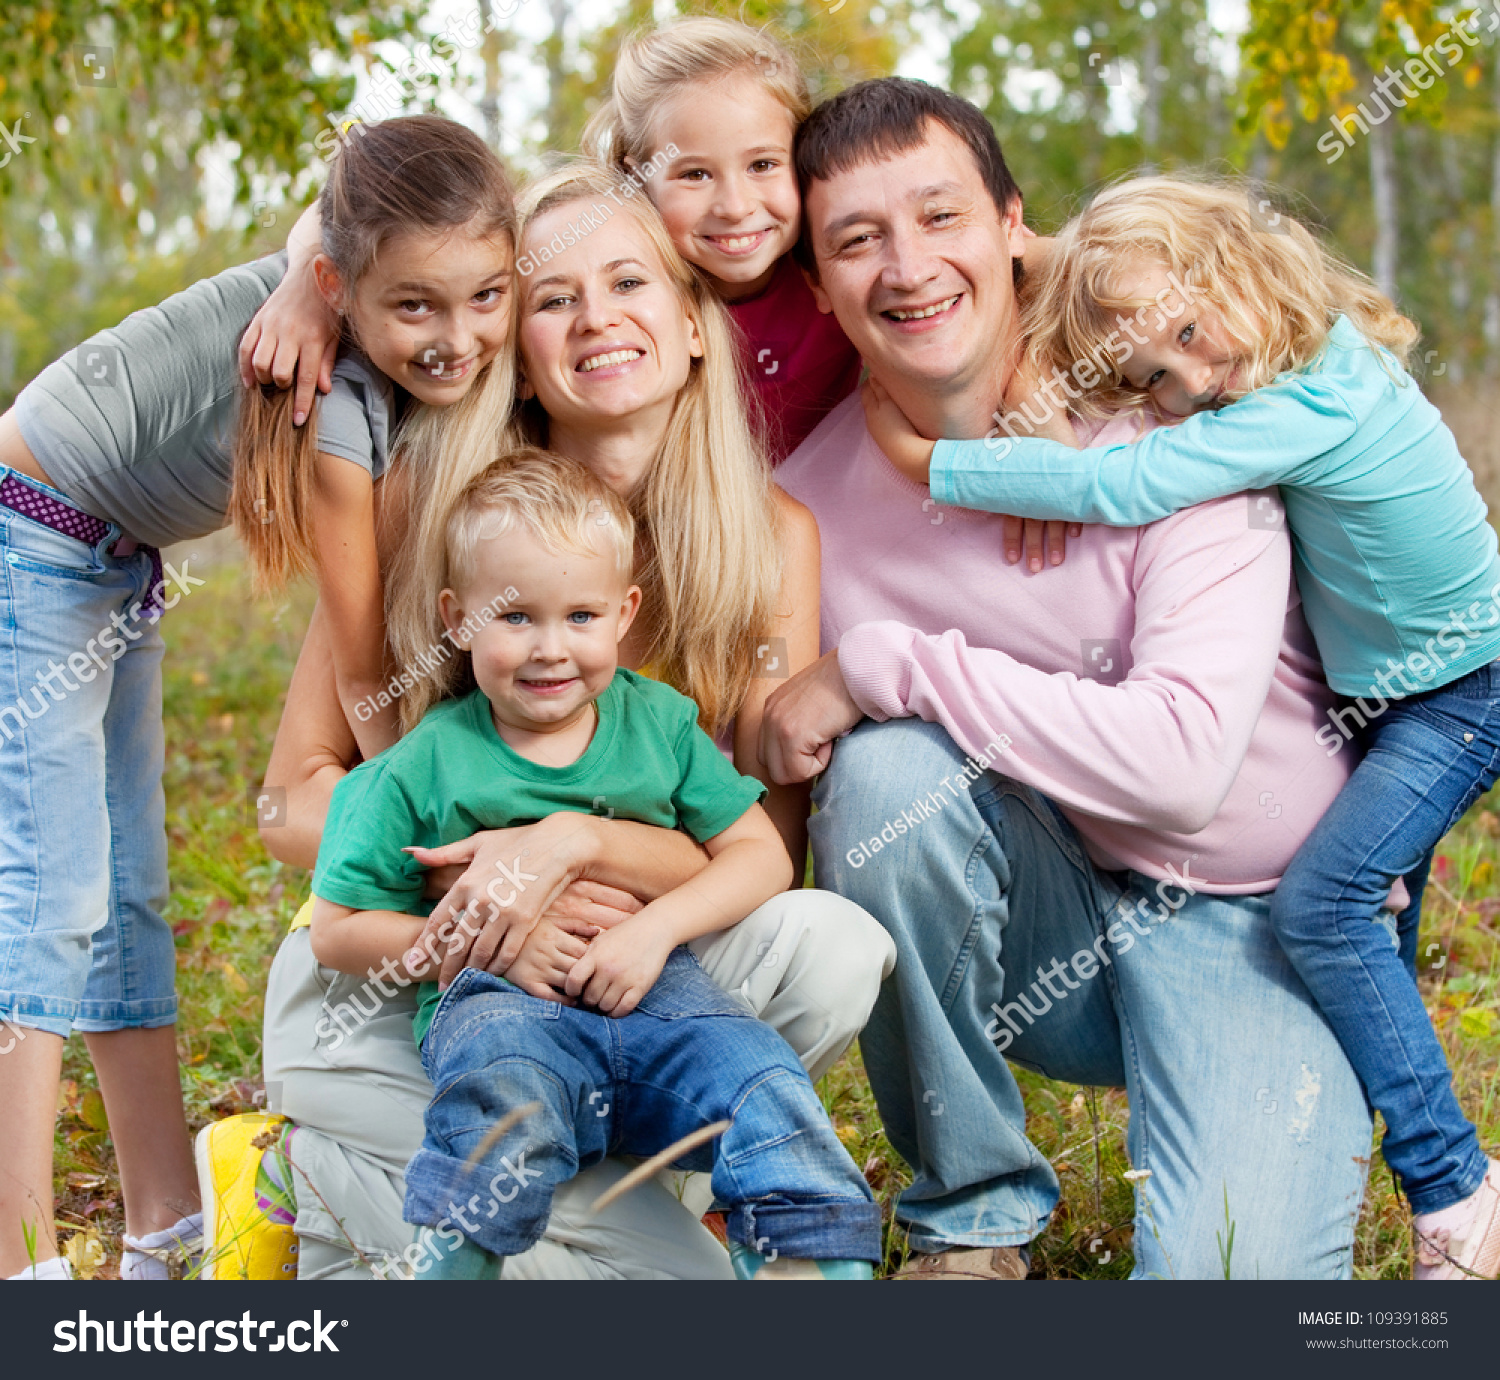 Kids Stock A Wide Selection Of Luxury Premium Cotton: Happy Large Family Children Autumn Park Stock Photo